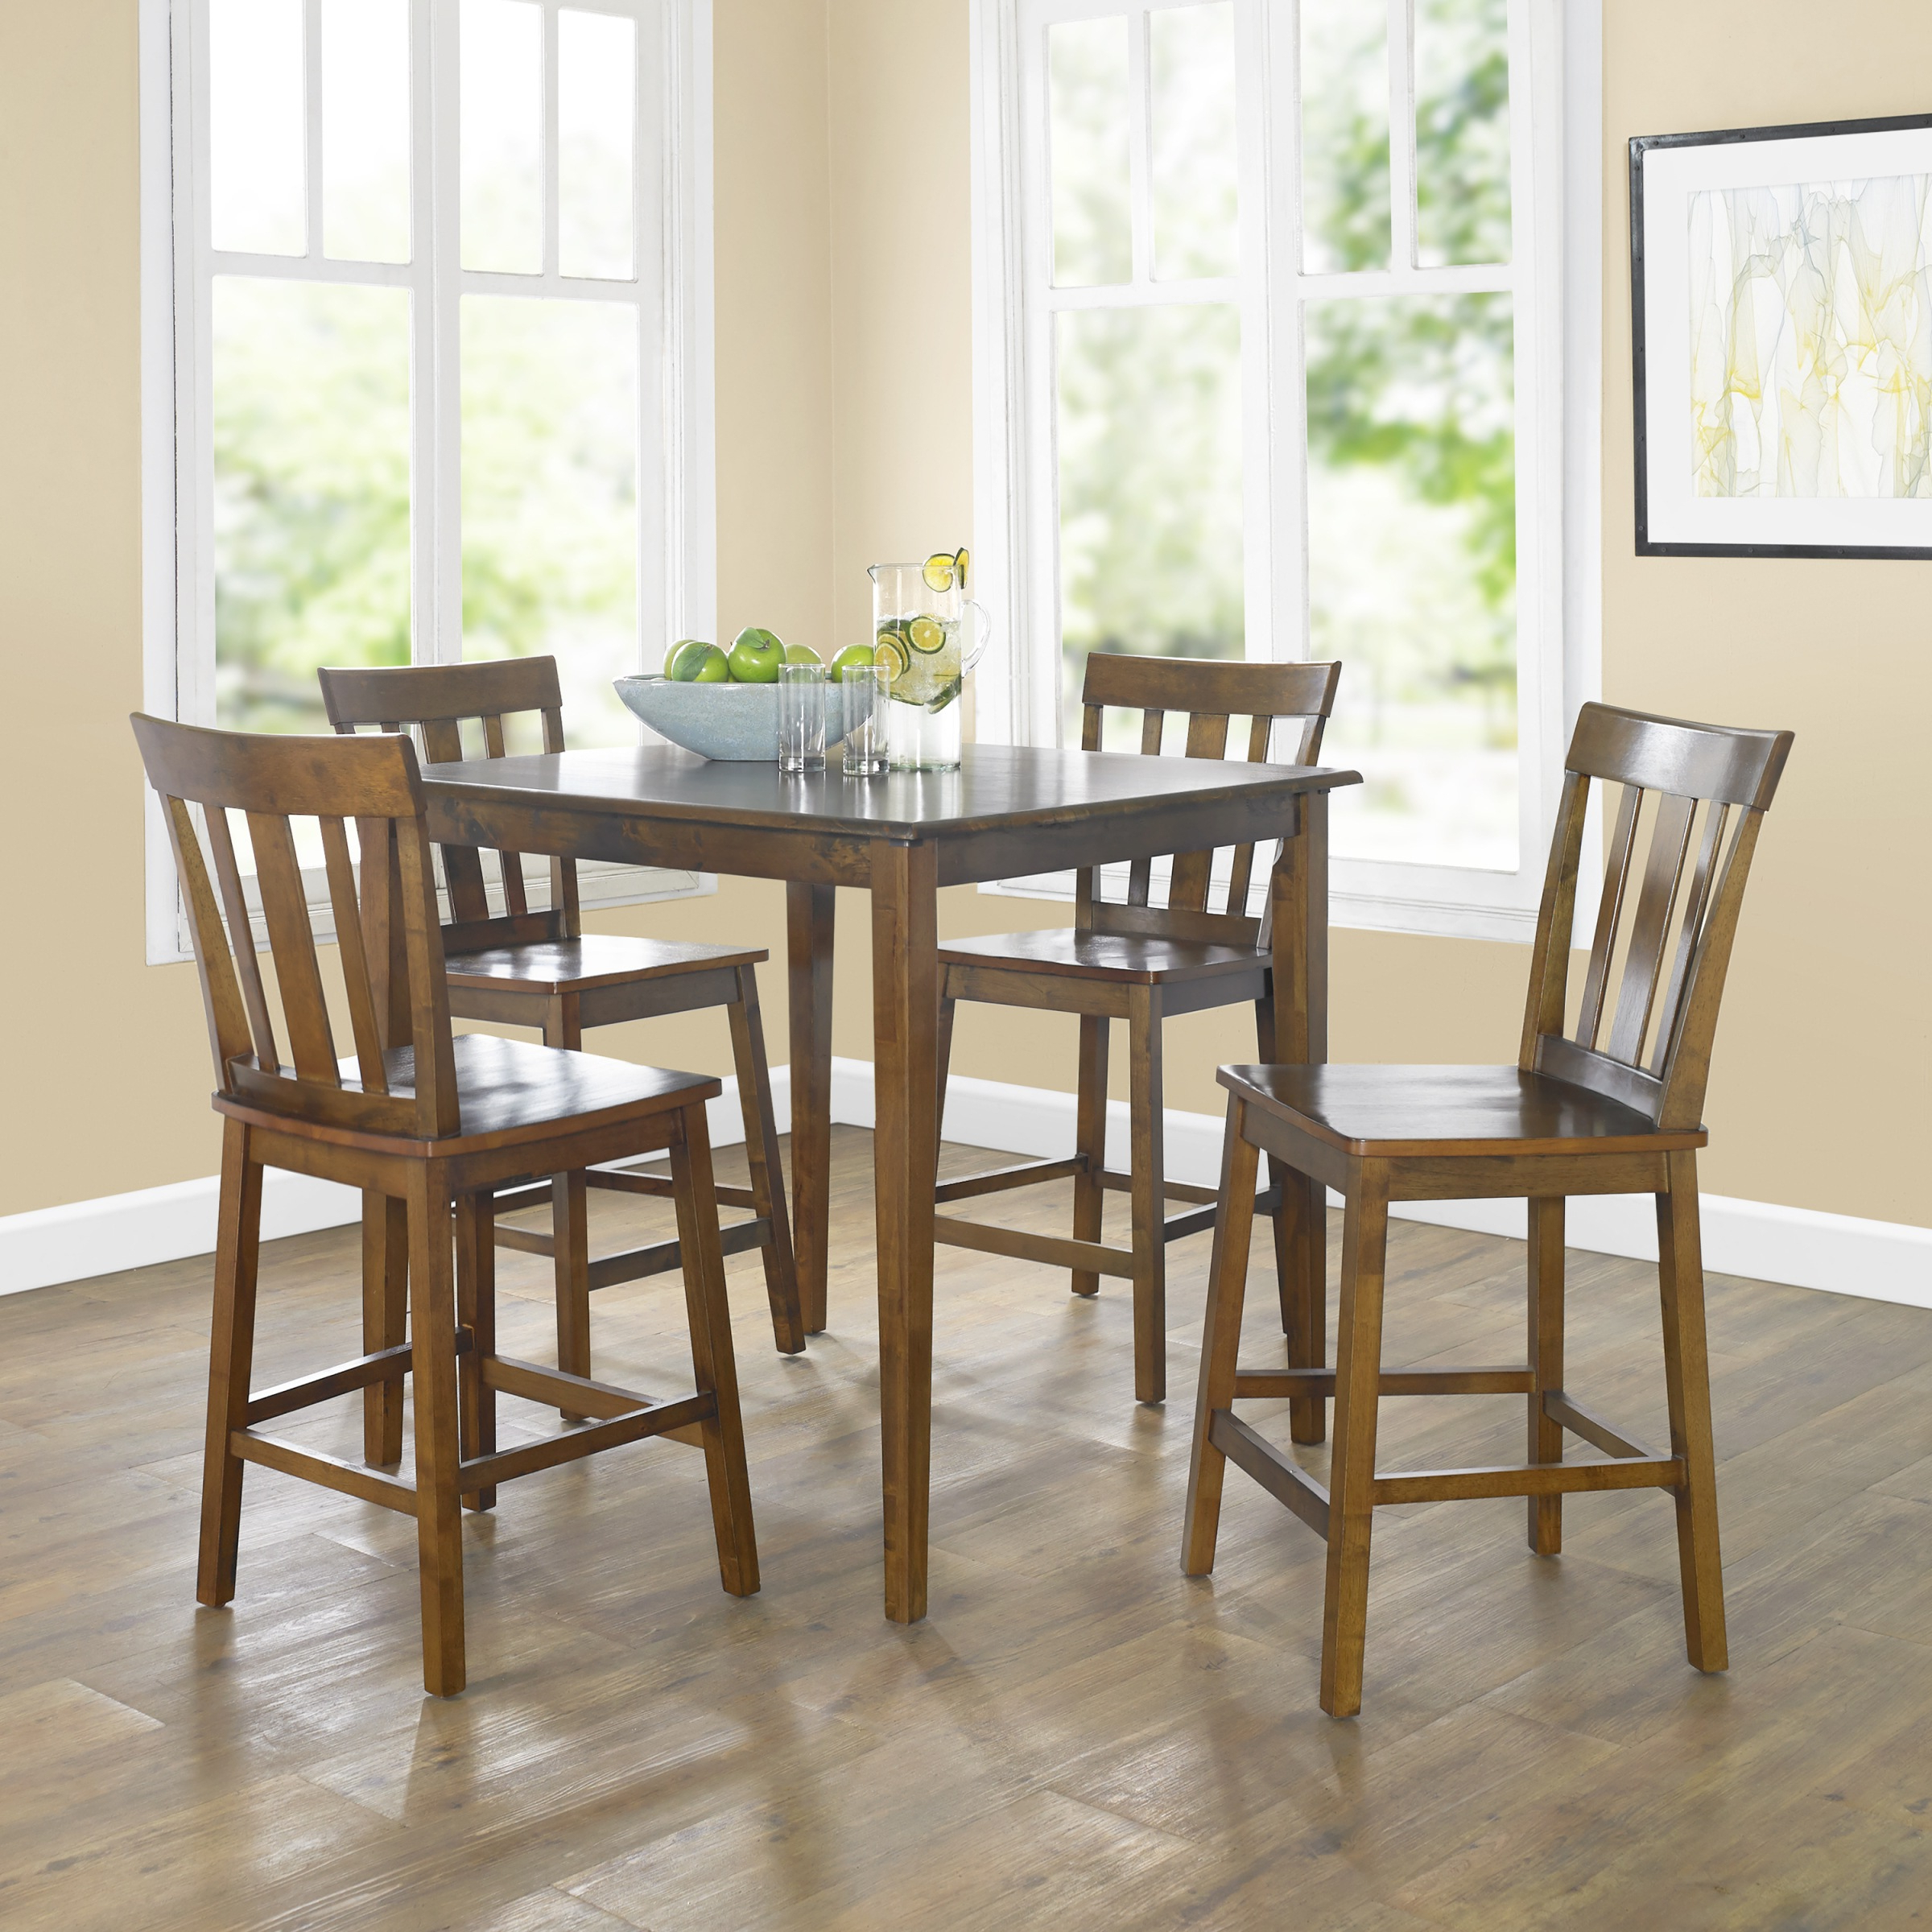 Mainstays 5 Piece Mission Counter Height Dining Set – Walmart Throughout Trendy Sheetz 3 Piece Counter Height Dining Sets (View 11 of 25)